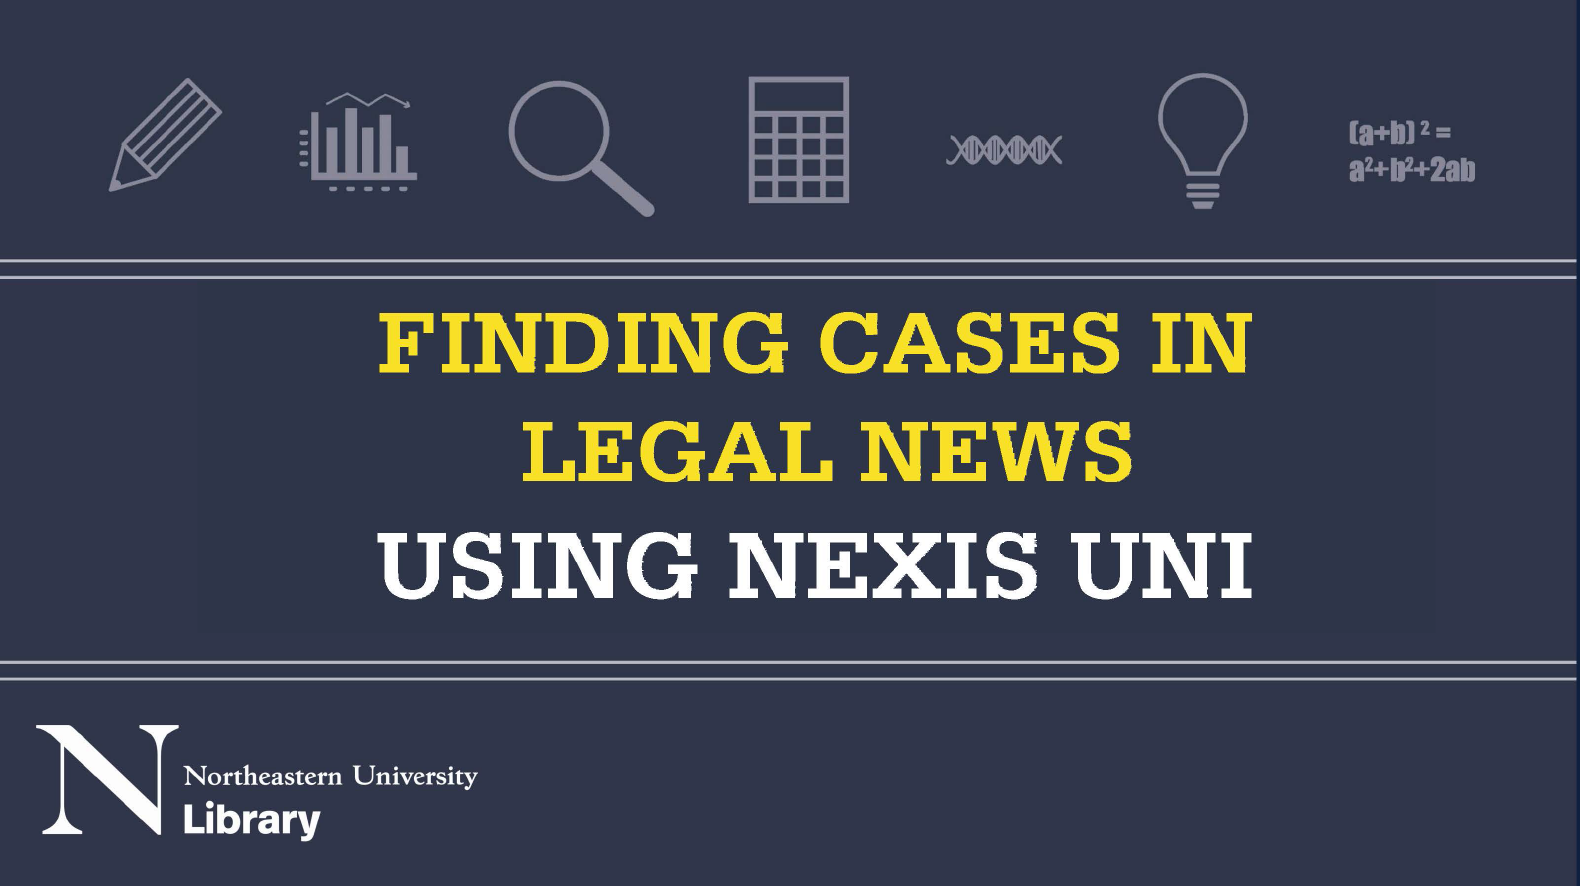 Finding cases in legal news using Nexis Uni